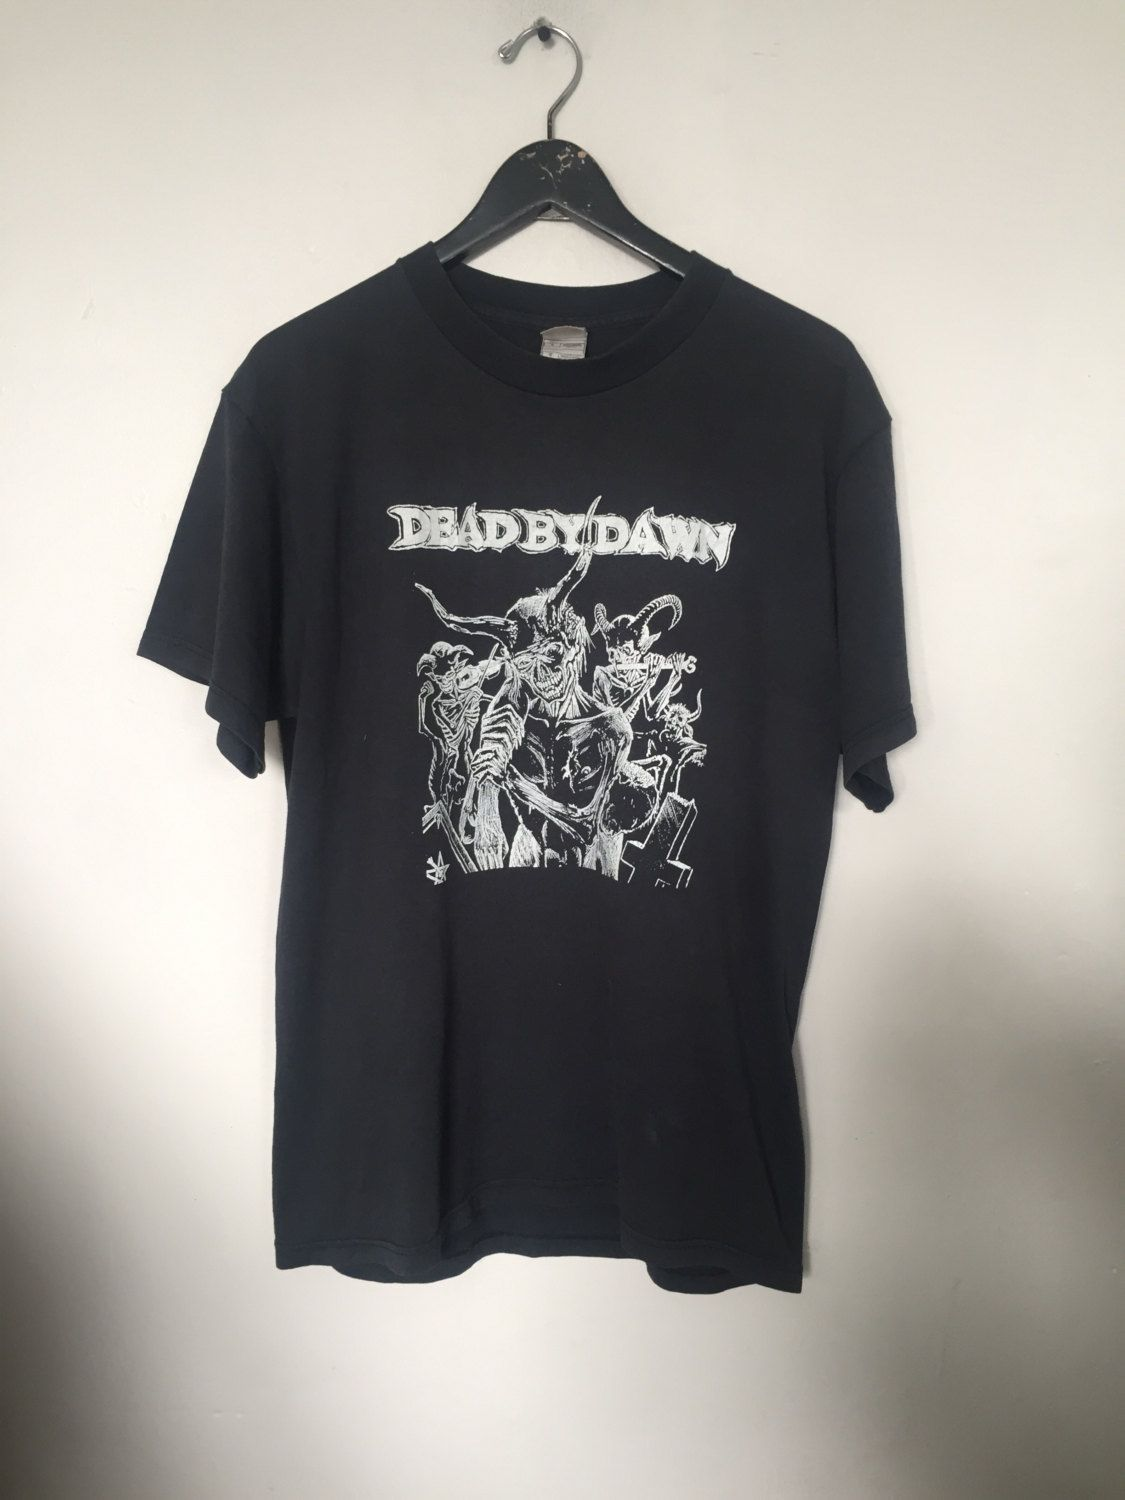 Black t shirt large - Dead By Dawn Tshirt Vintage T Shirt Heavy Metal Band T Tshirts Black Metal Shirt Death Metal Band Shirts Satanic Clothing Black Large